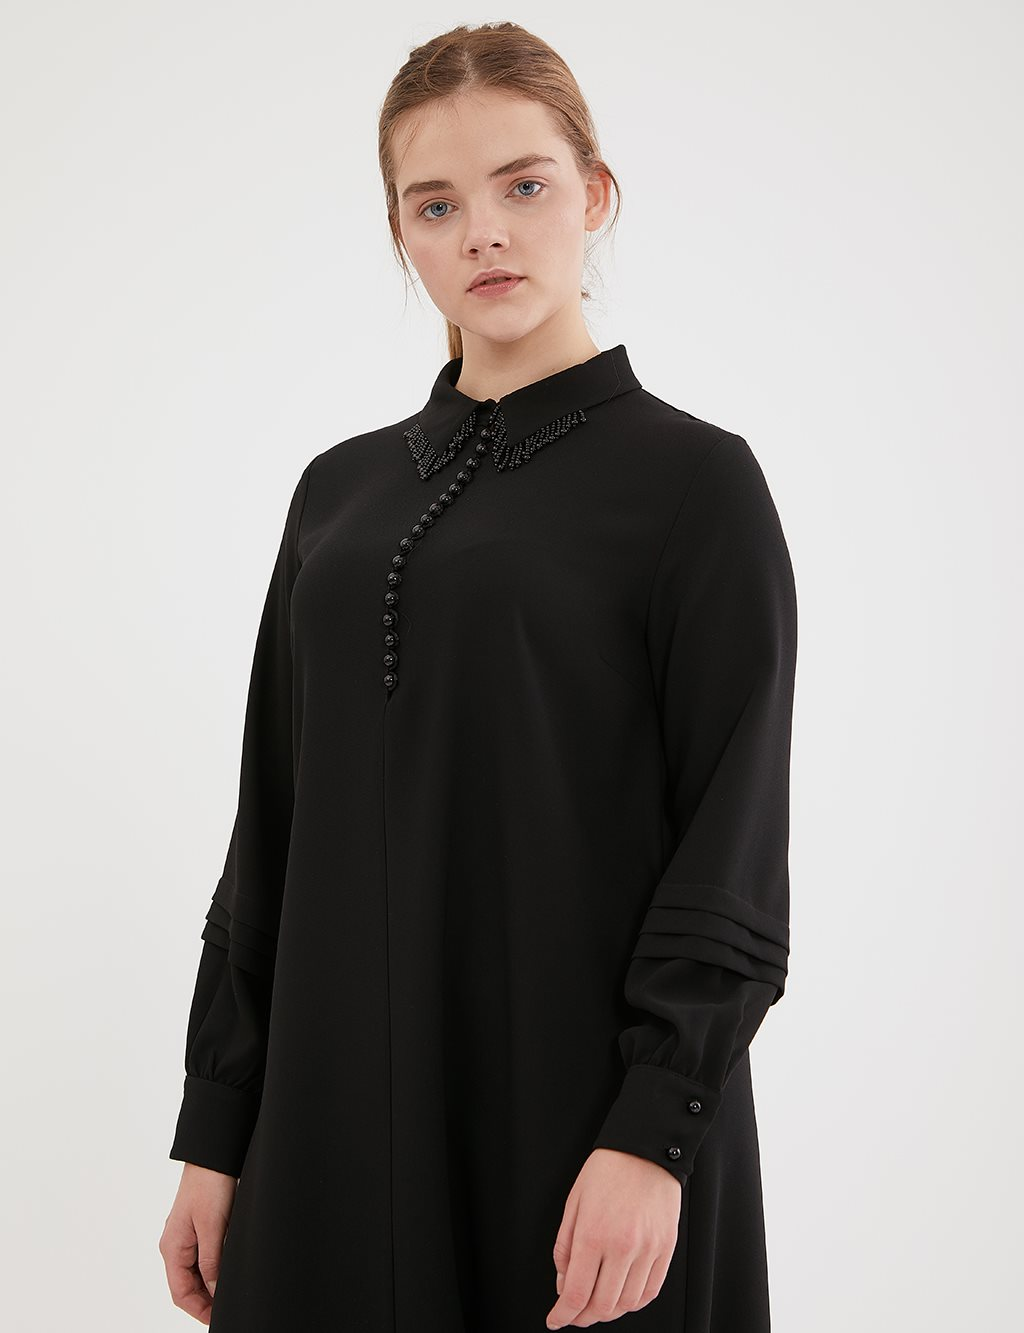 Shirt Collar Long Tunic A20 21235 Black